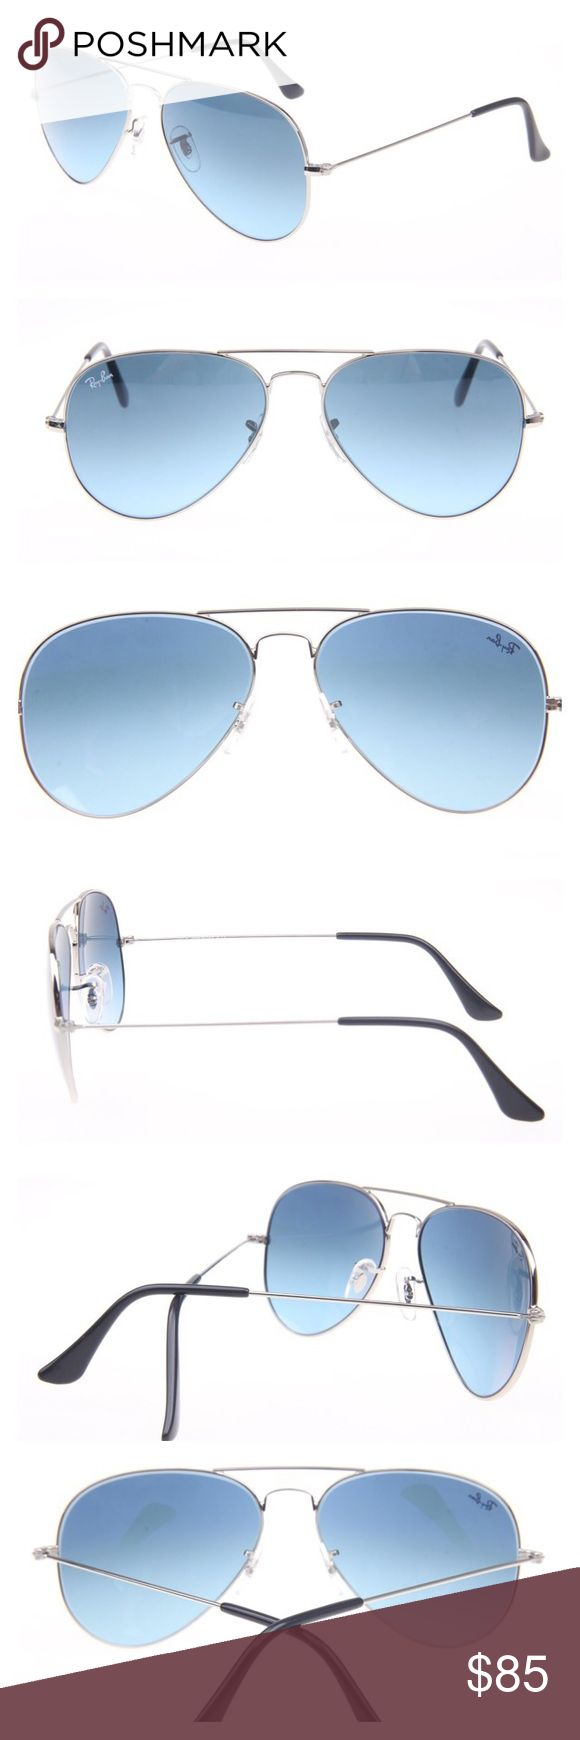 Ray-Ban Aviator Sunglasses Gold Blue Gradient Lens One of the most popular sunglasses in the Ray-Ban Aviator's line. Gold frame and blue gradient lenses, model RB3025 001/3F, size 58-14. Made in Italy, original, authentic, come with original brown leather case and cloth Ray-Ban Accessories Sunglasses